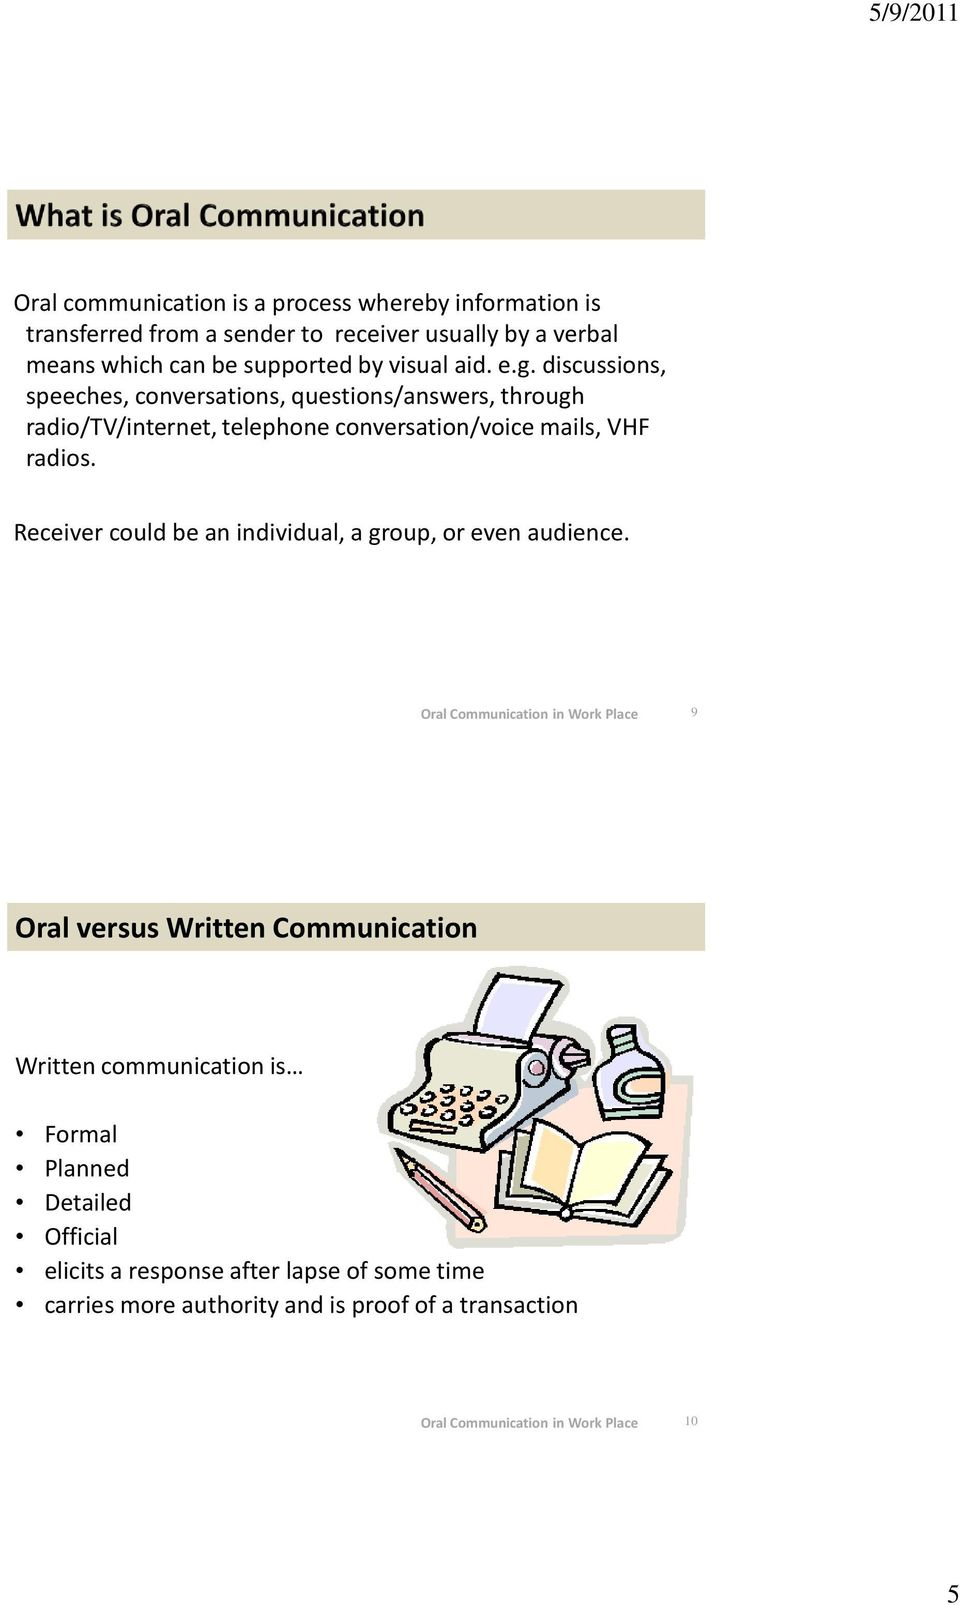 Oral Communication in Workplace - PDF